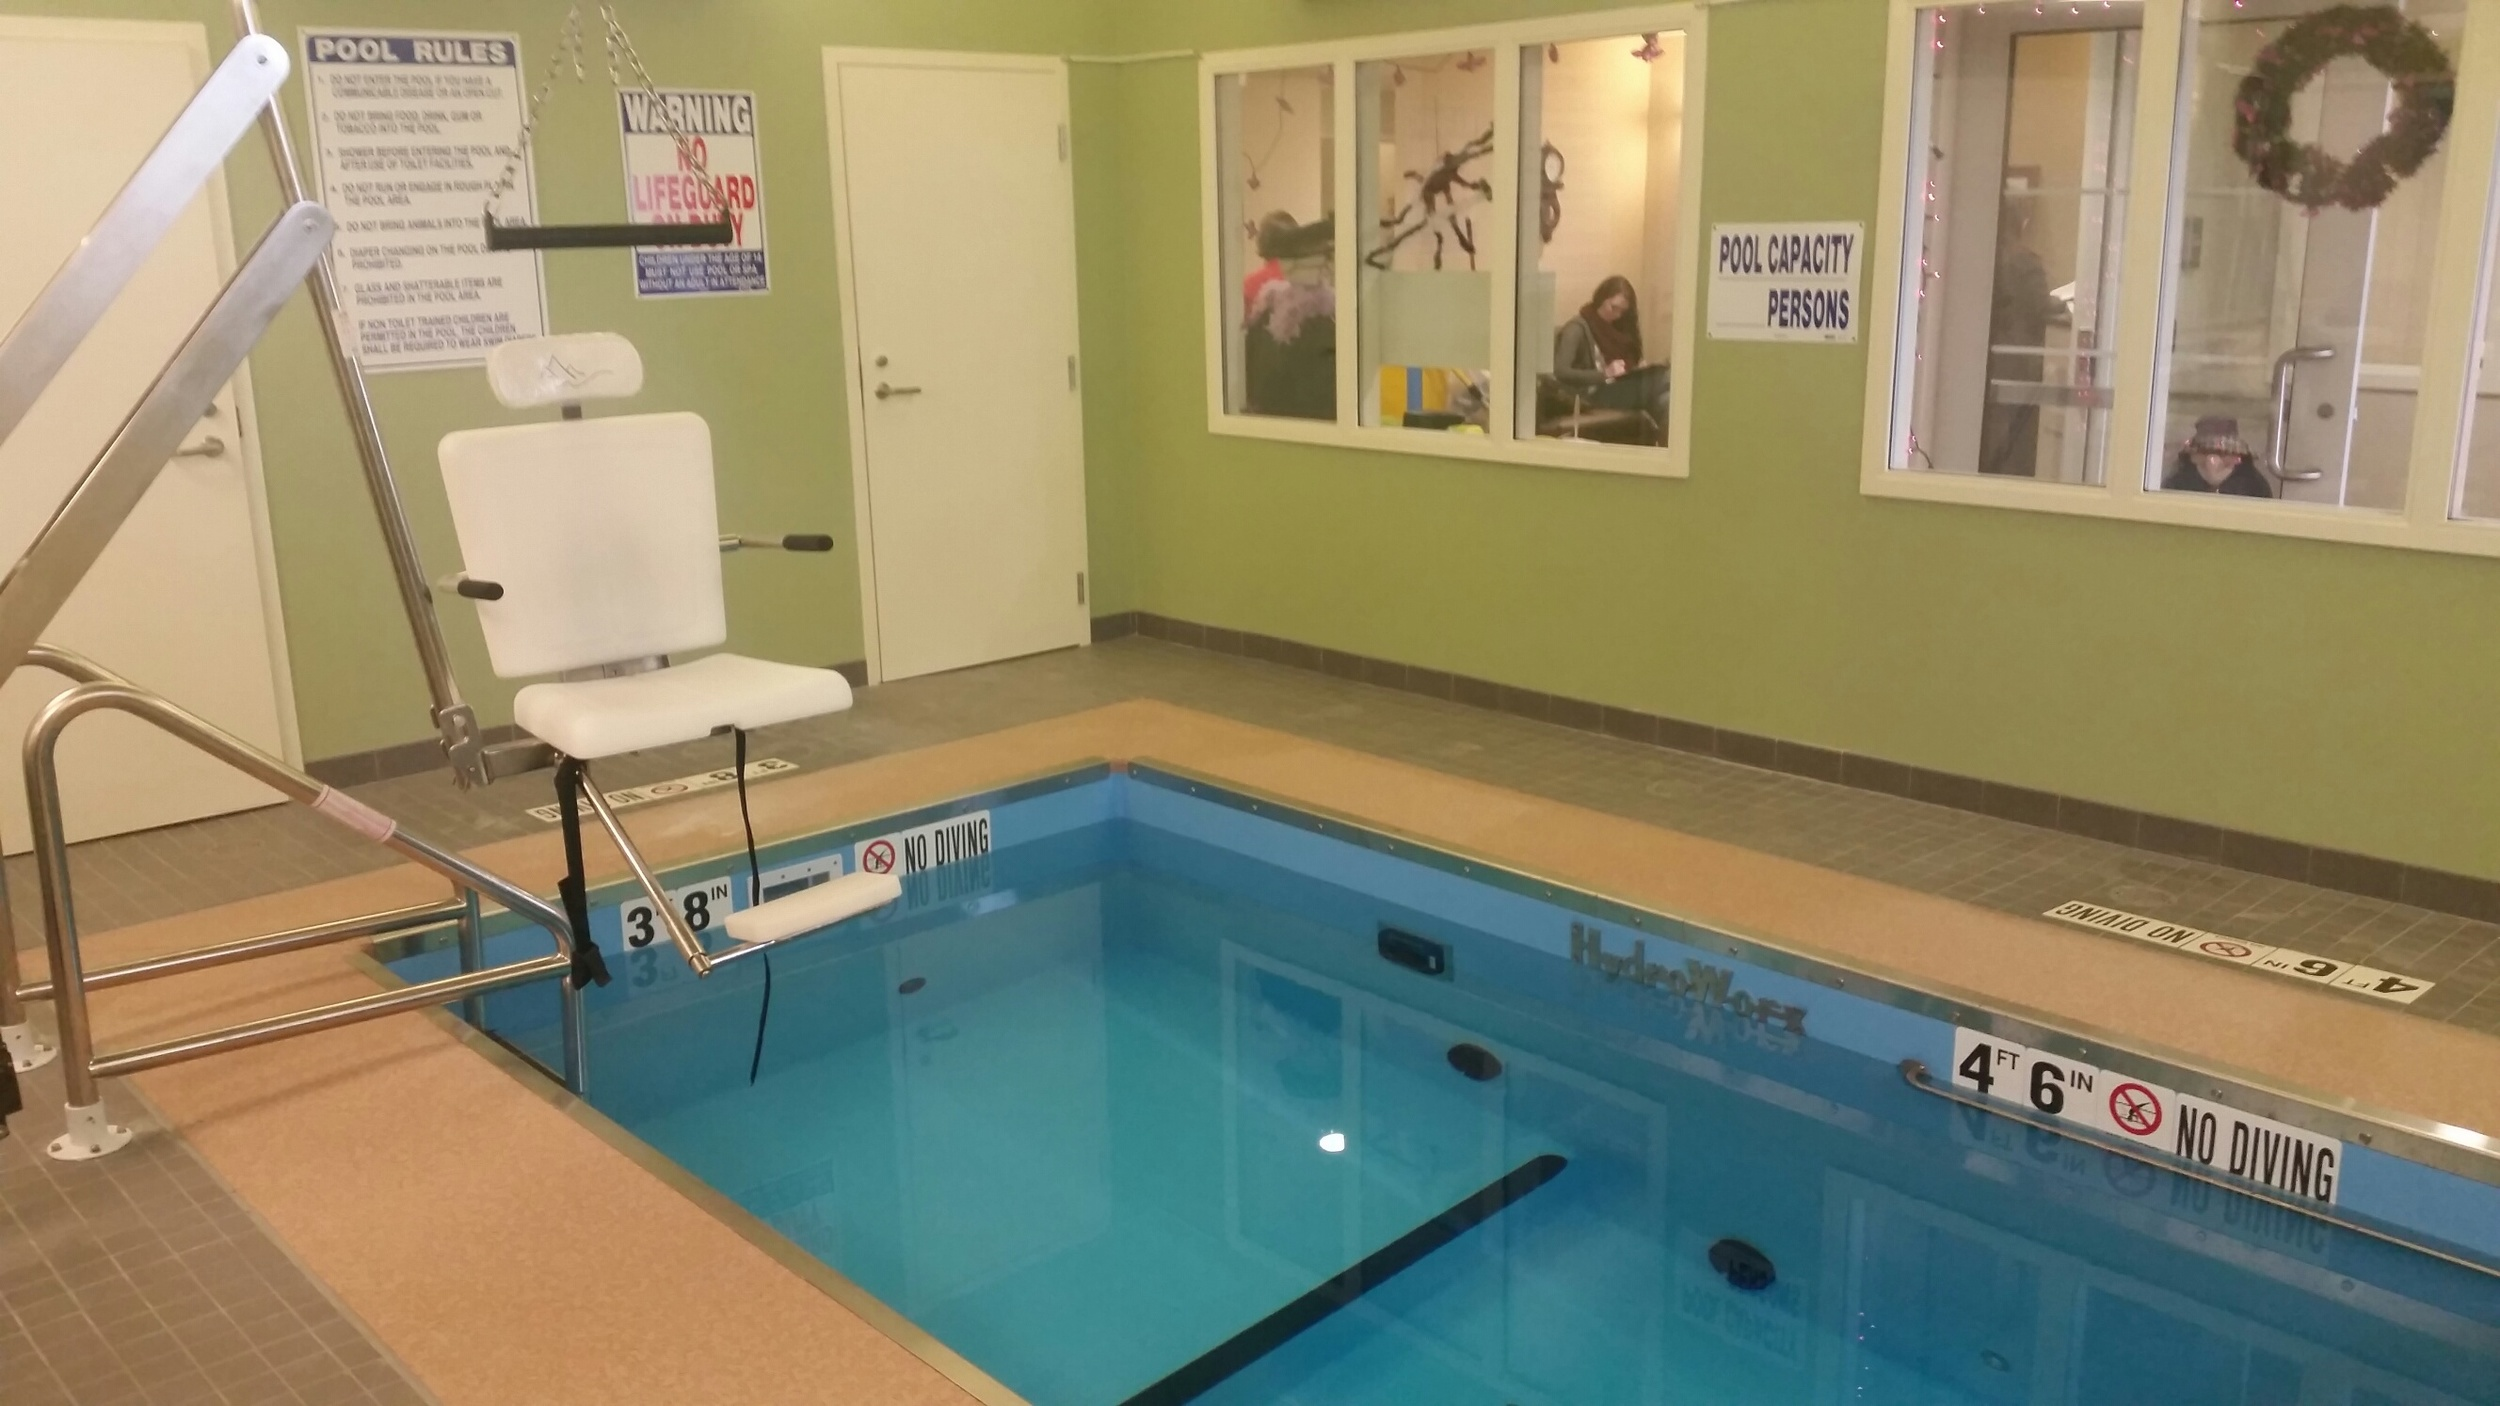 physical therapy pool at Holton manor Nursing Home in Elkhorn, WI